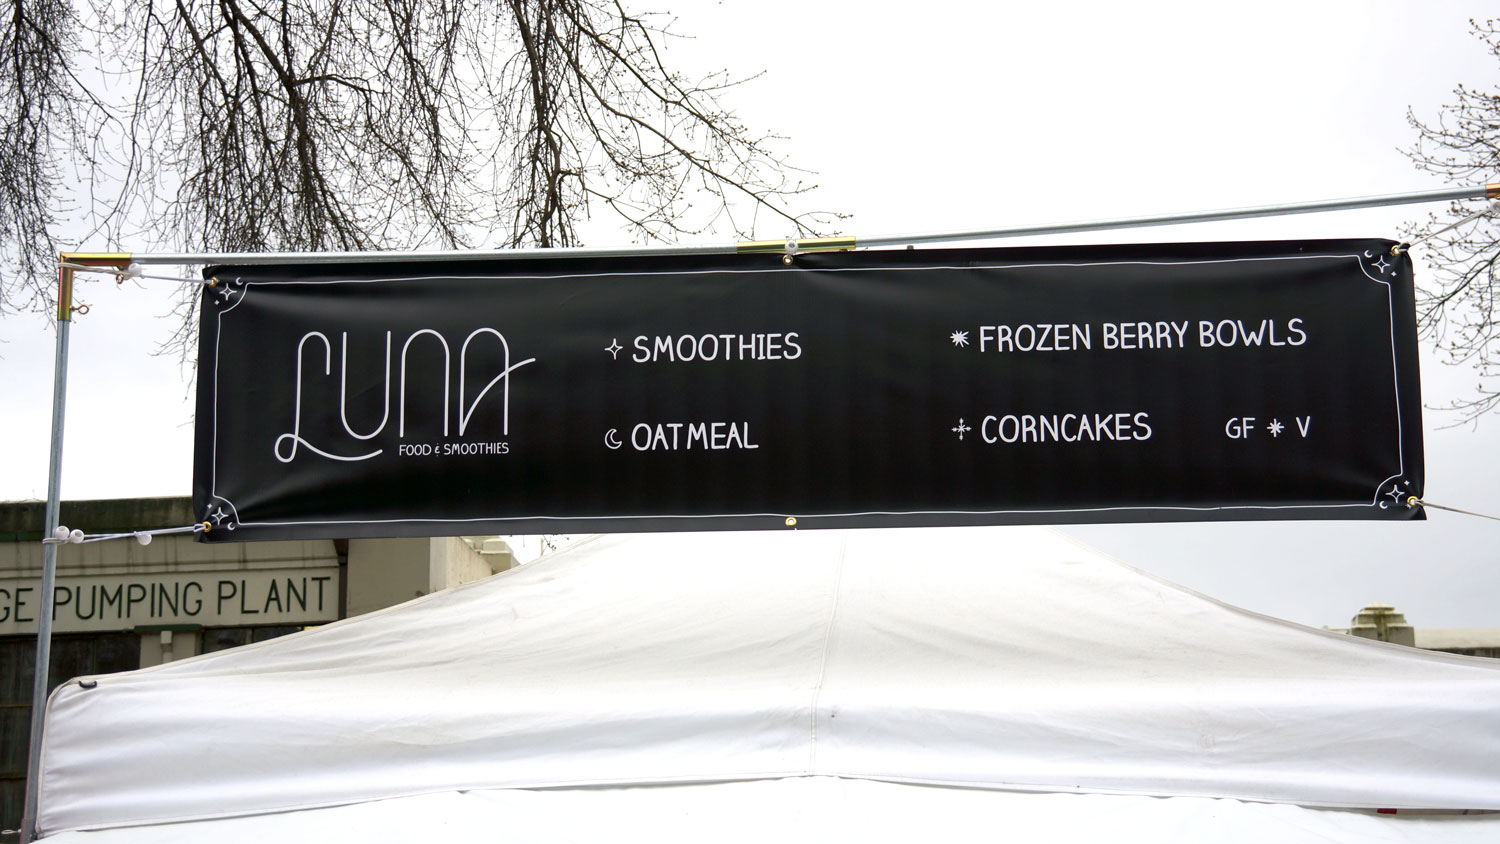 Luna Food & Smoothies at the Portland Saturday Market Branding by Graphicsbyte aka Mark Boehly